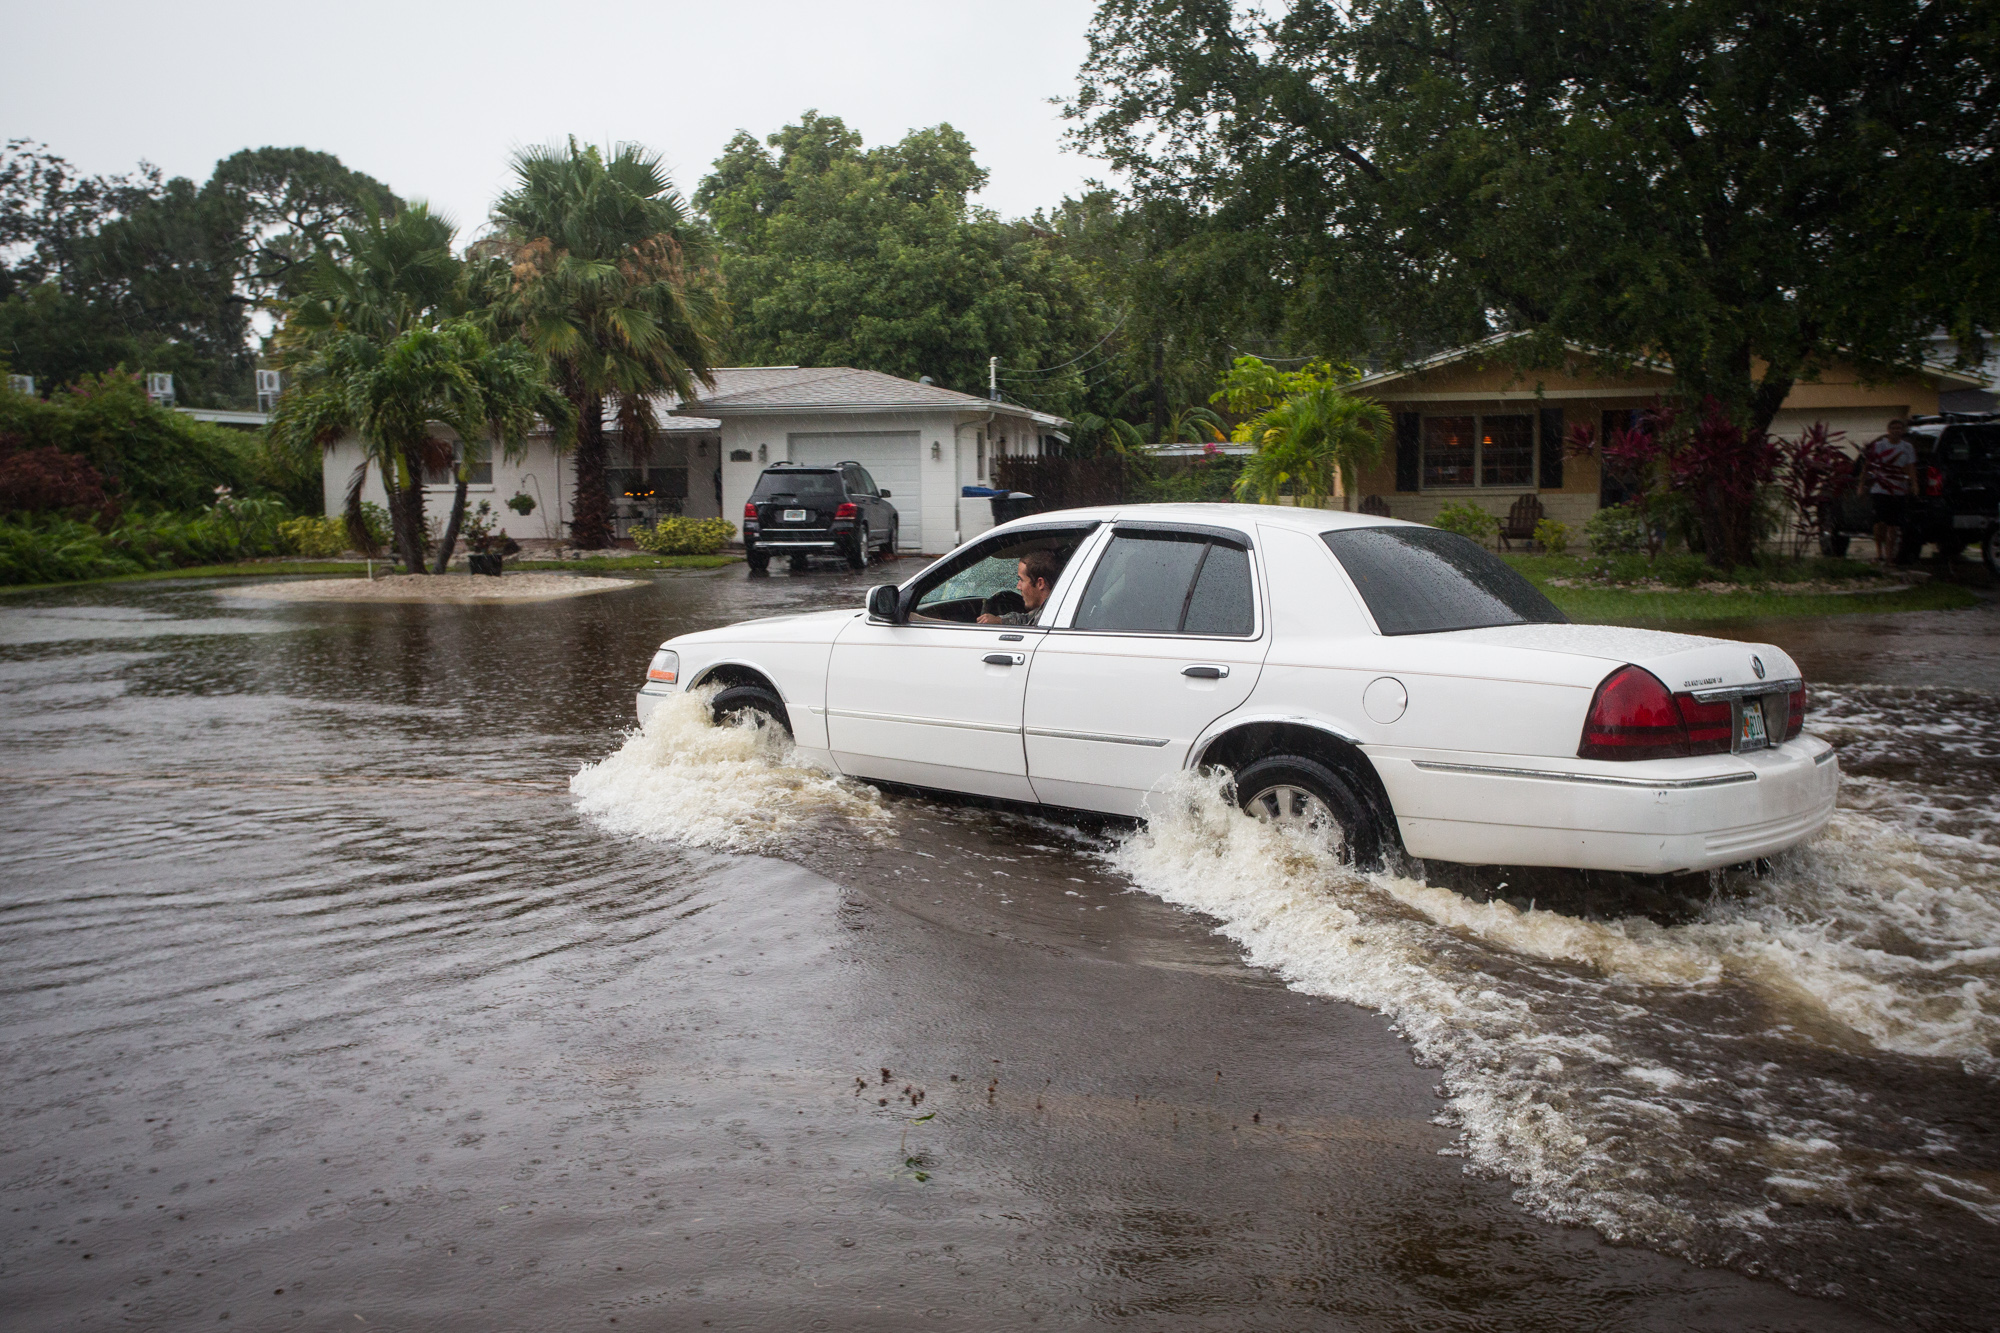 A motorist drives down a flooded street in St. Petersburg, Fla., after Tropical Storm Colin dumped heavy rains over the Tampa Bay area on June 7, 2016.